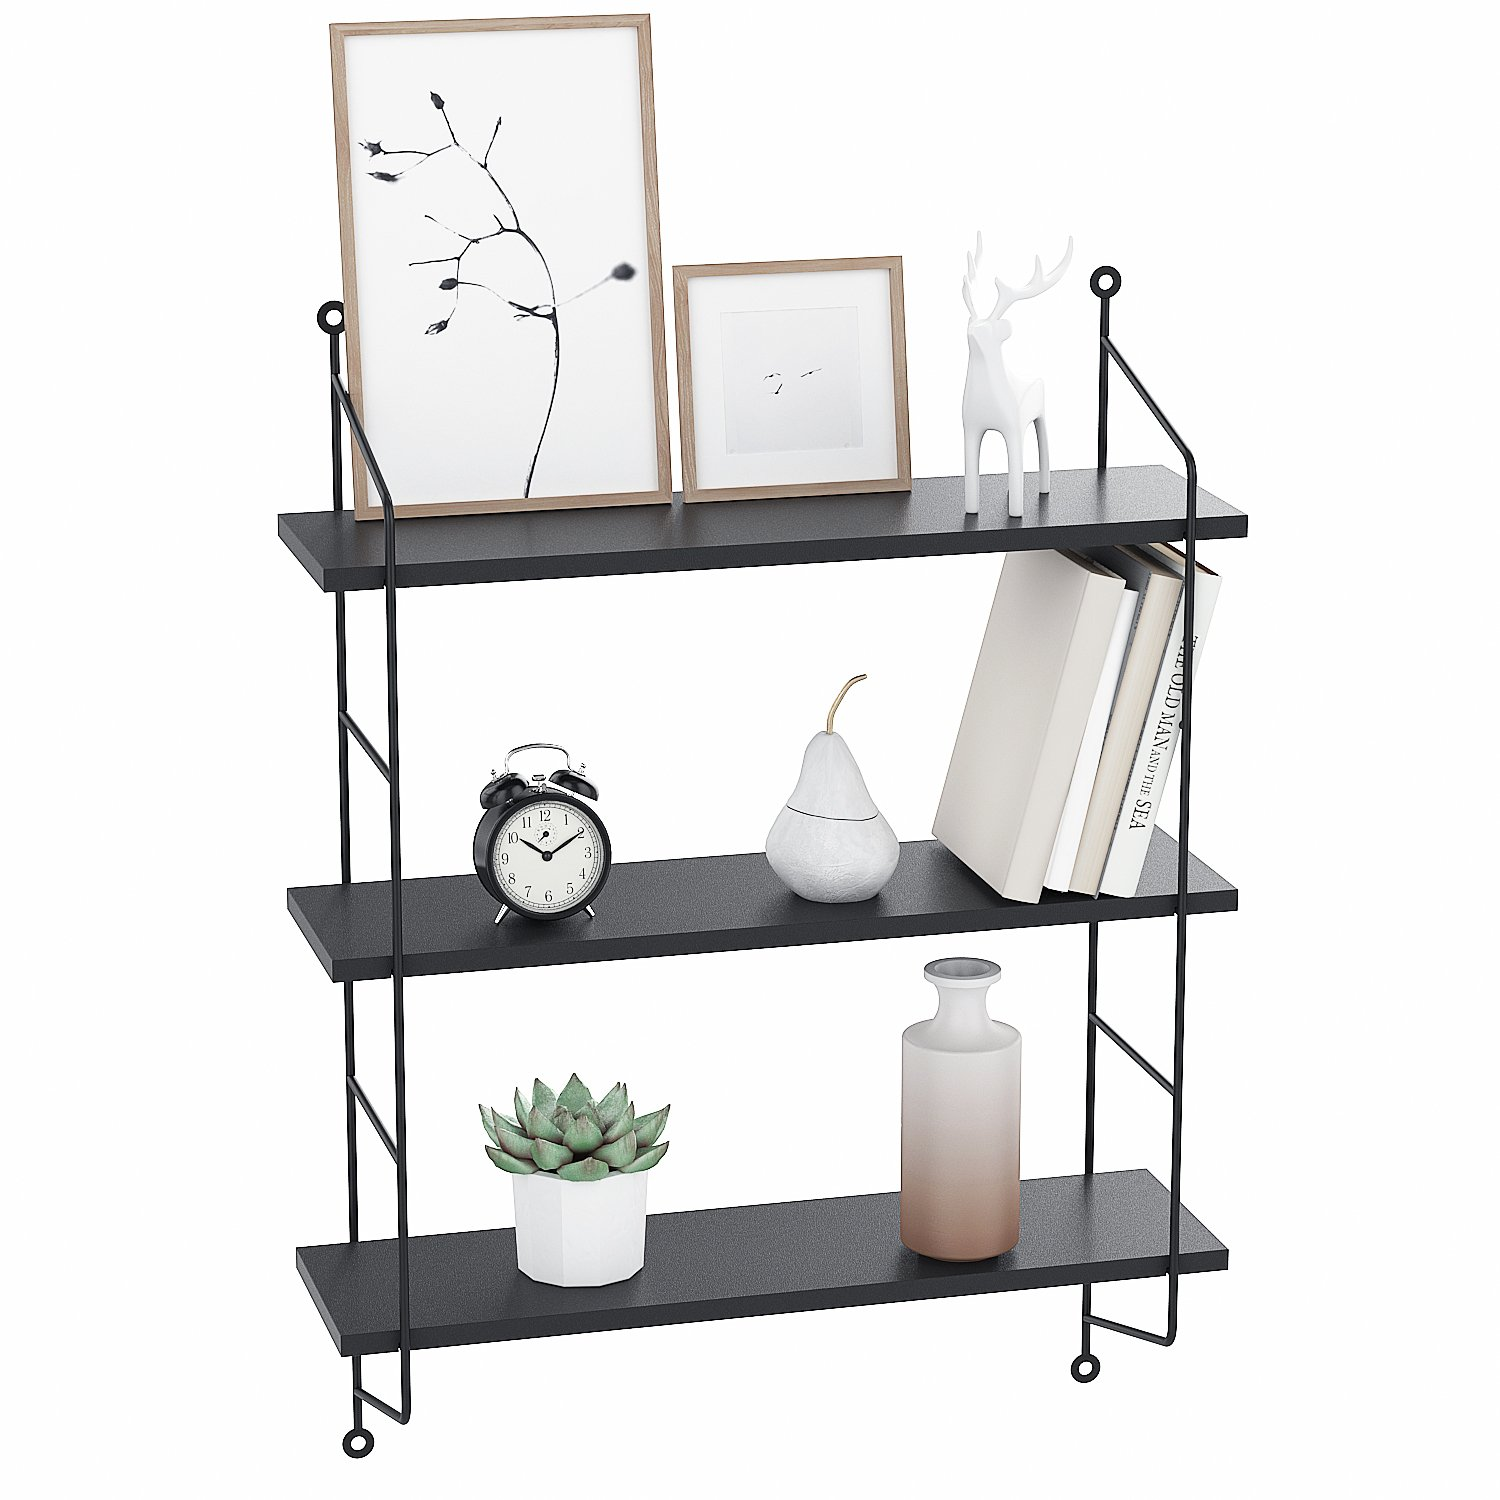 homevol industrial floating shelves wall mounted metal frame urban chic display shelf tier black home kitchen closet shelving bunnings brackets ikea coat storage pins canadian